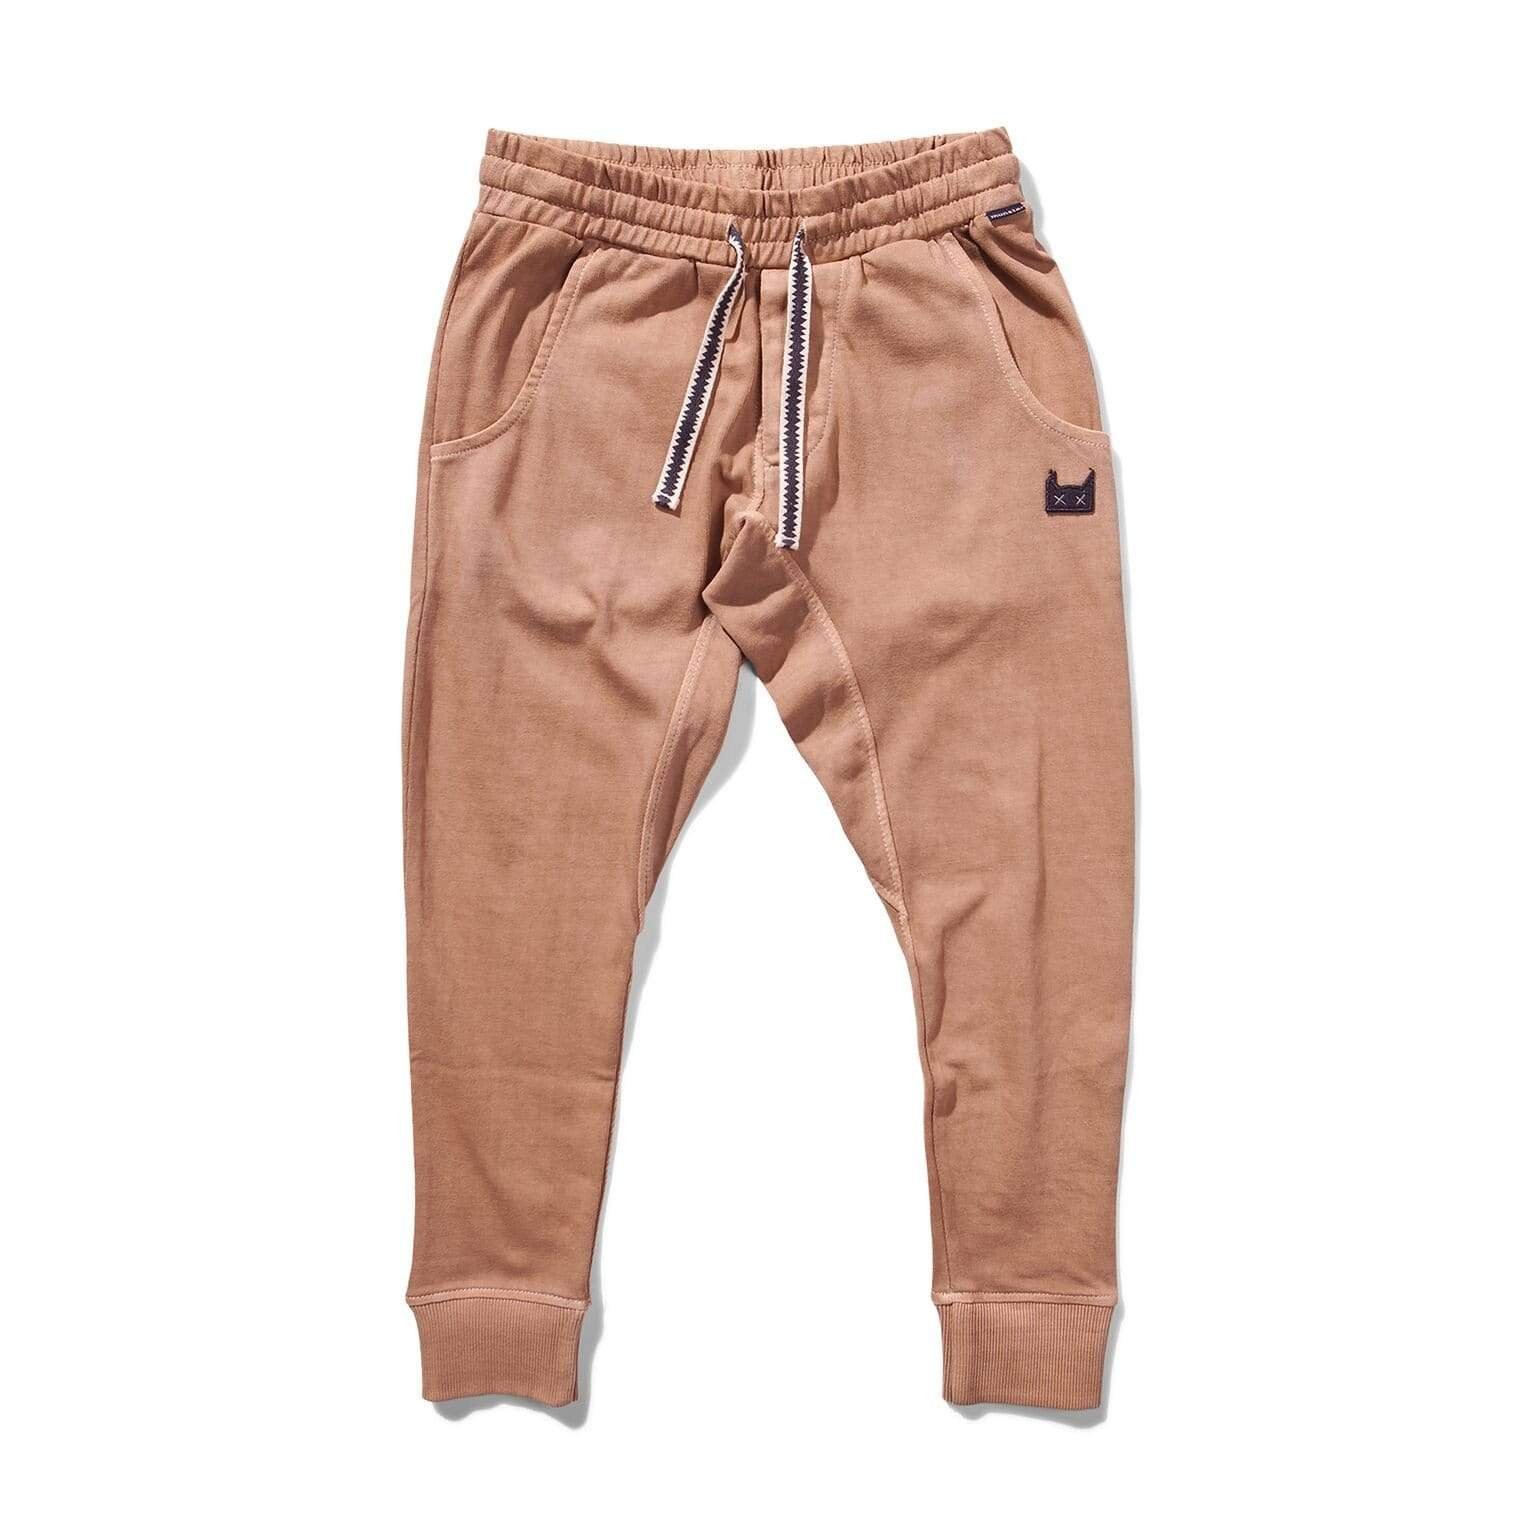 Munster Track Pants Daynight Trackpant - Pigment Rust